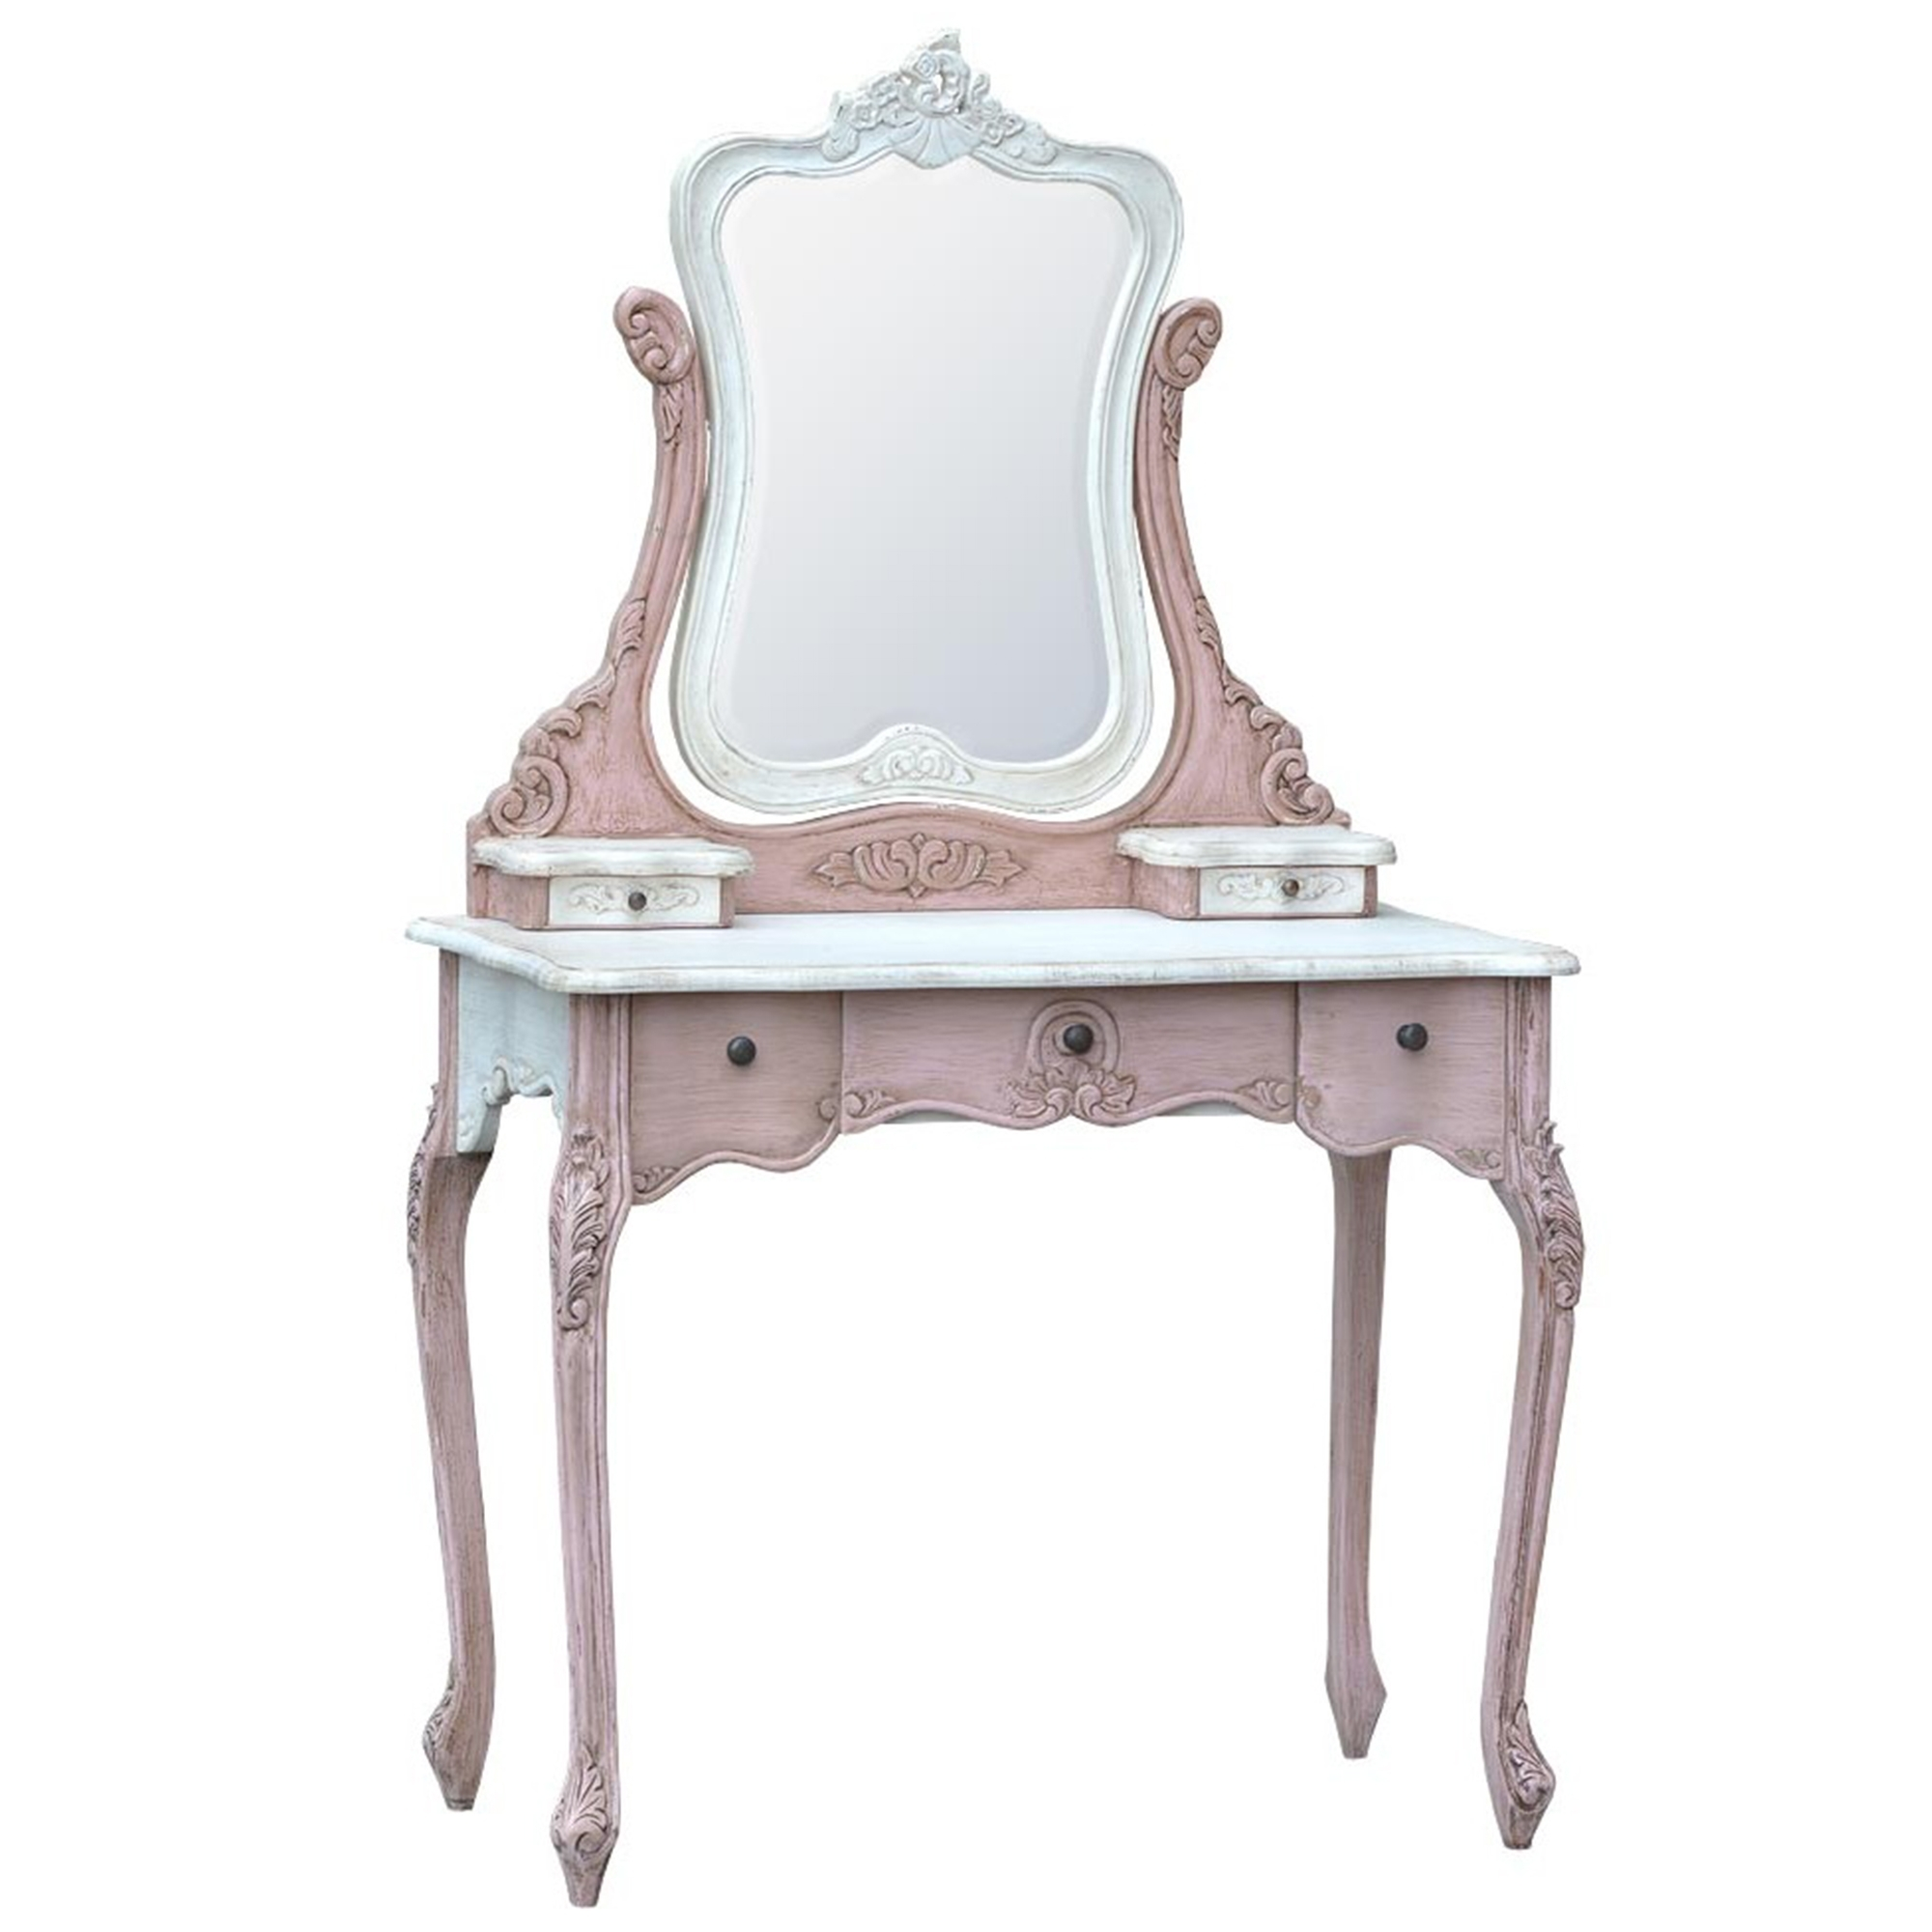 Shabby chic dressing table isabella shabby chic dressing table geotapseo Images